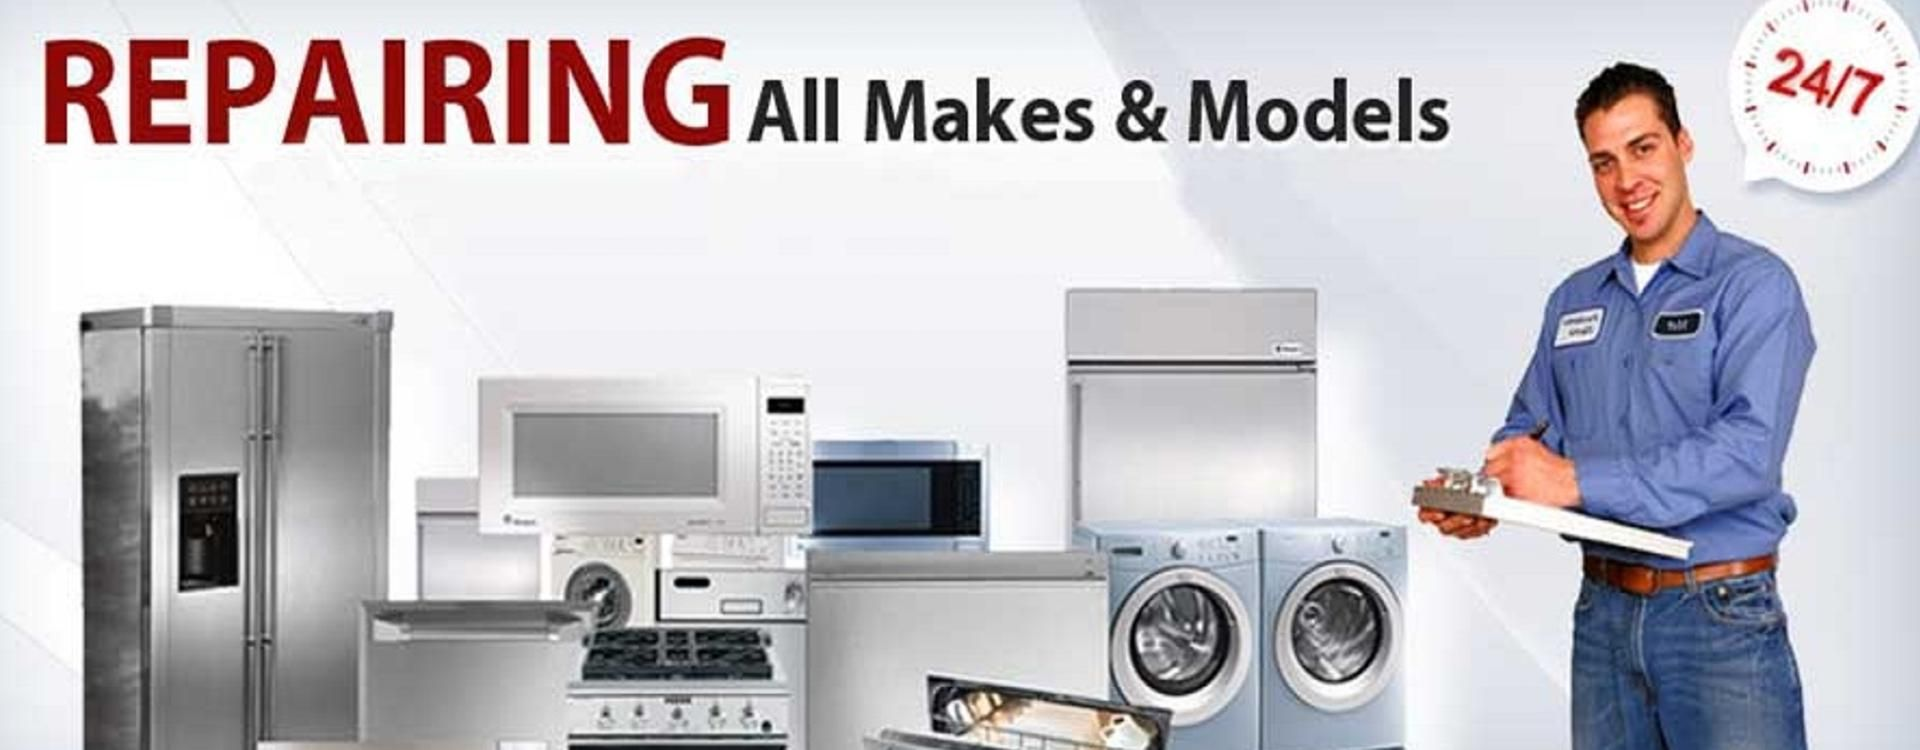 In Home Electronics Get An Exhaustive Home Appliances Repair In Dubai For All Your